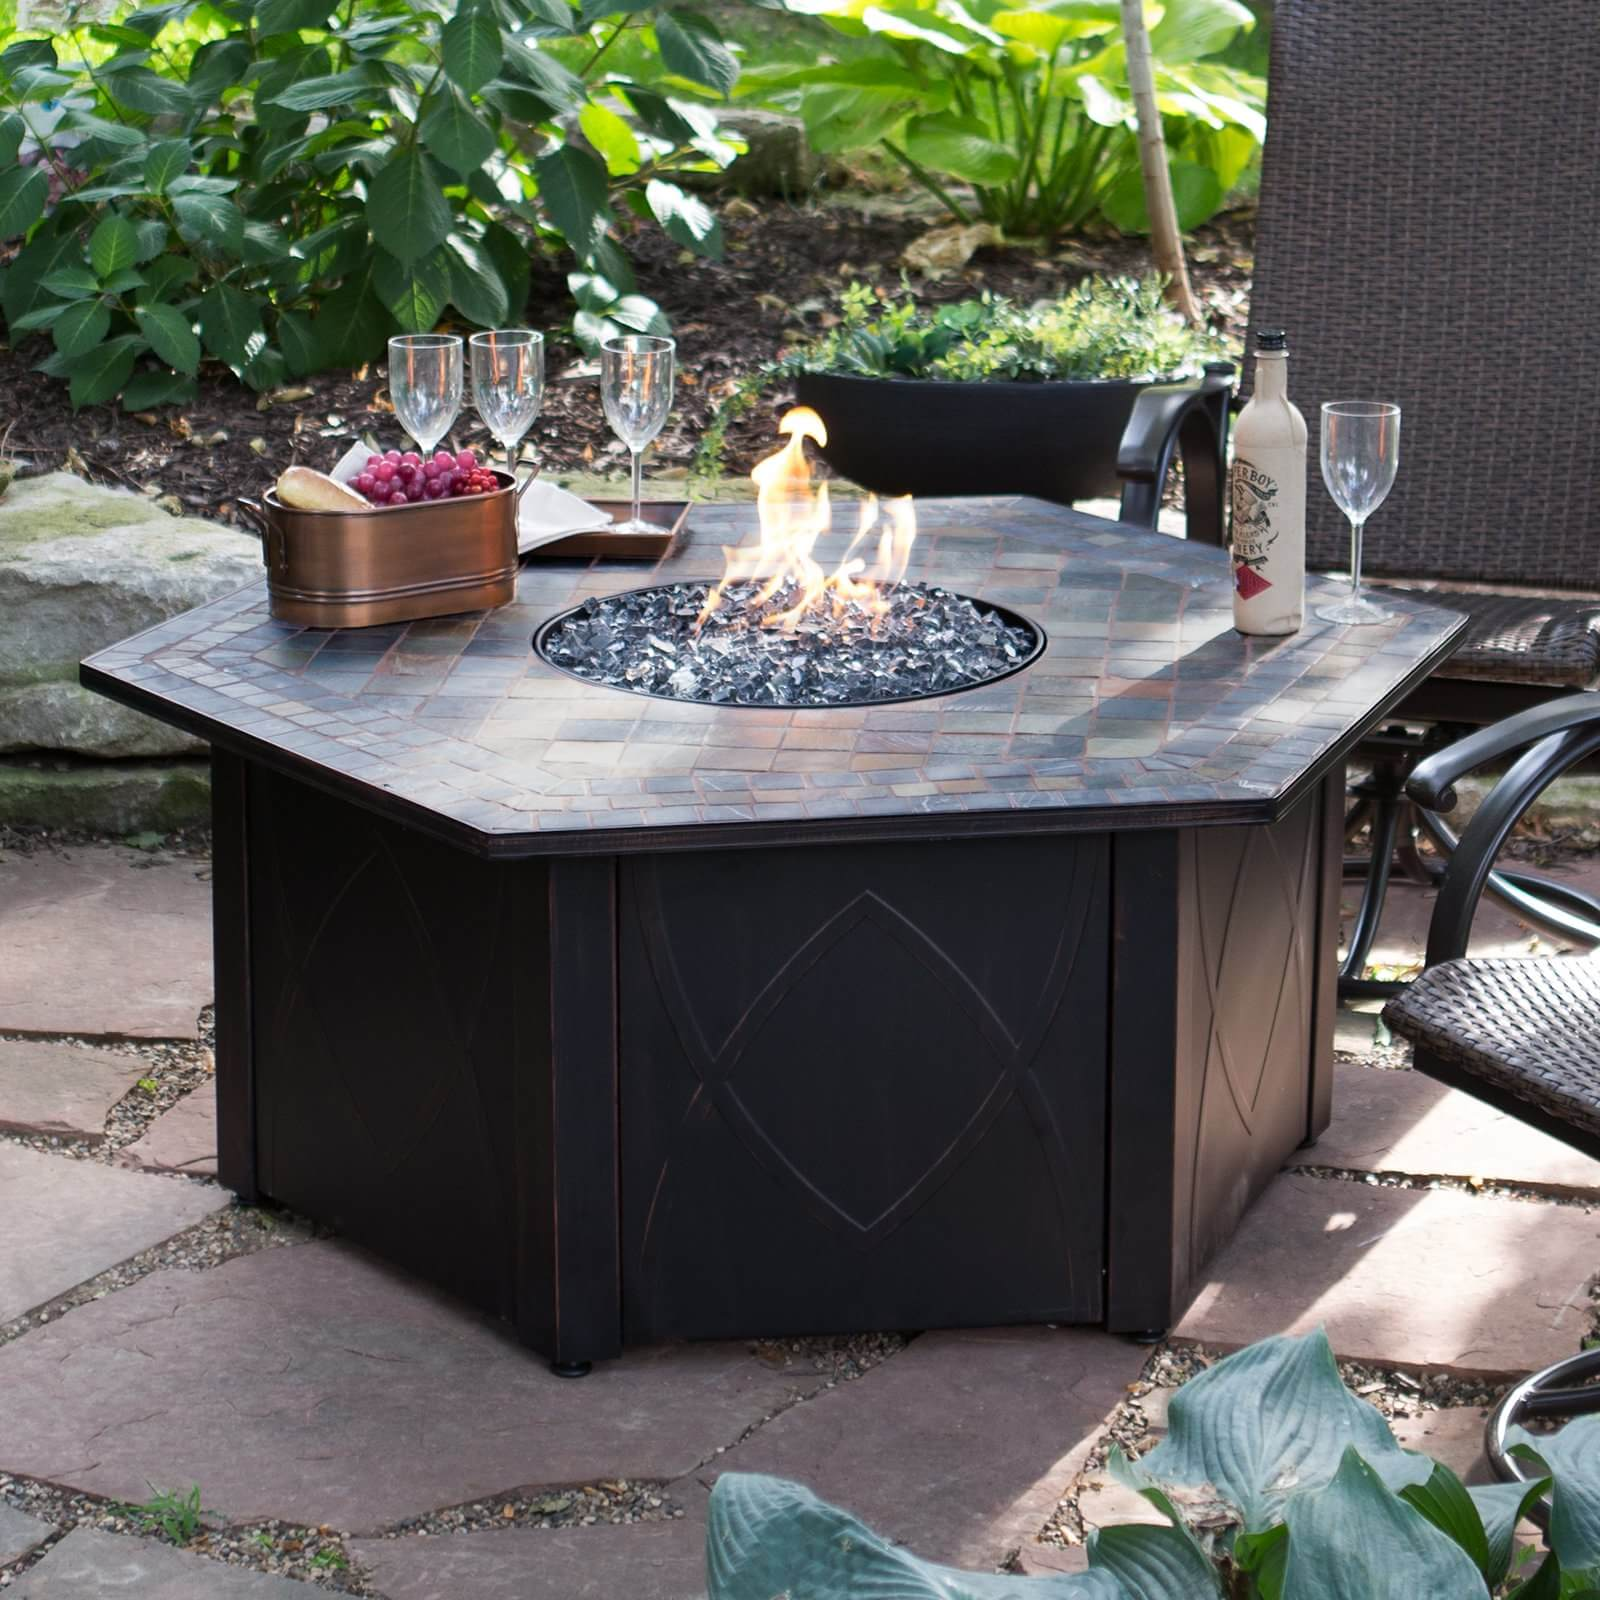 Want a campfire in a most unusual way? Get this hexagon shaped patio propane fire pit for your home. This fire pit can wow the crowd and give you all the access you need for your drinks, supplies and others. It has a 30,000 BTU burner capacity and it is weatherproof! It comes with its own fire pit cover to protect your fire pit.